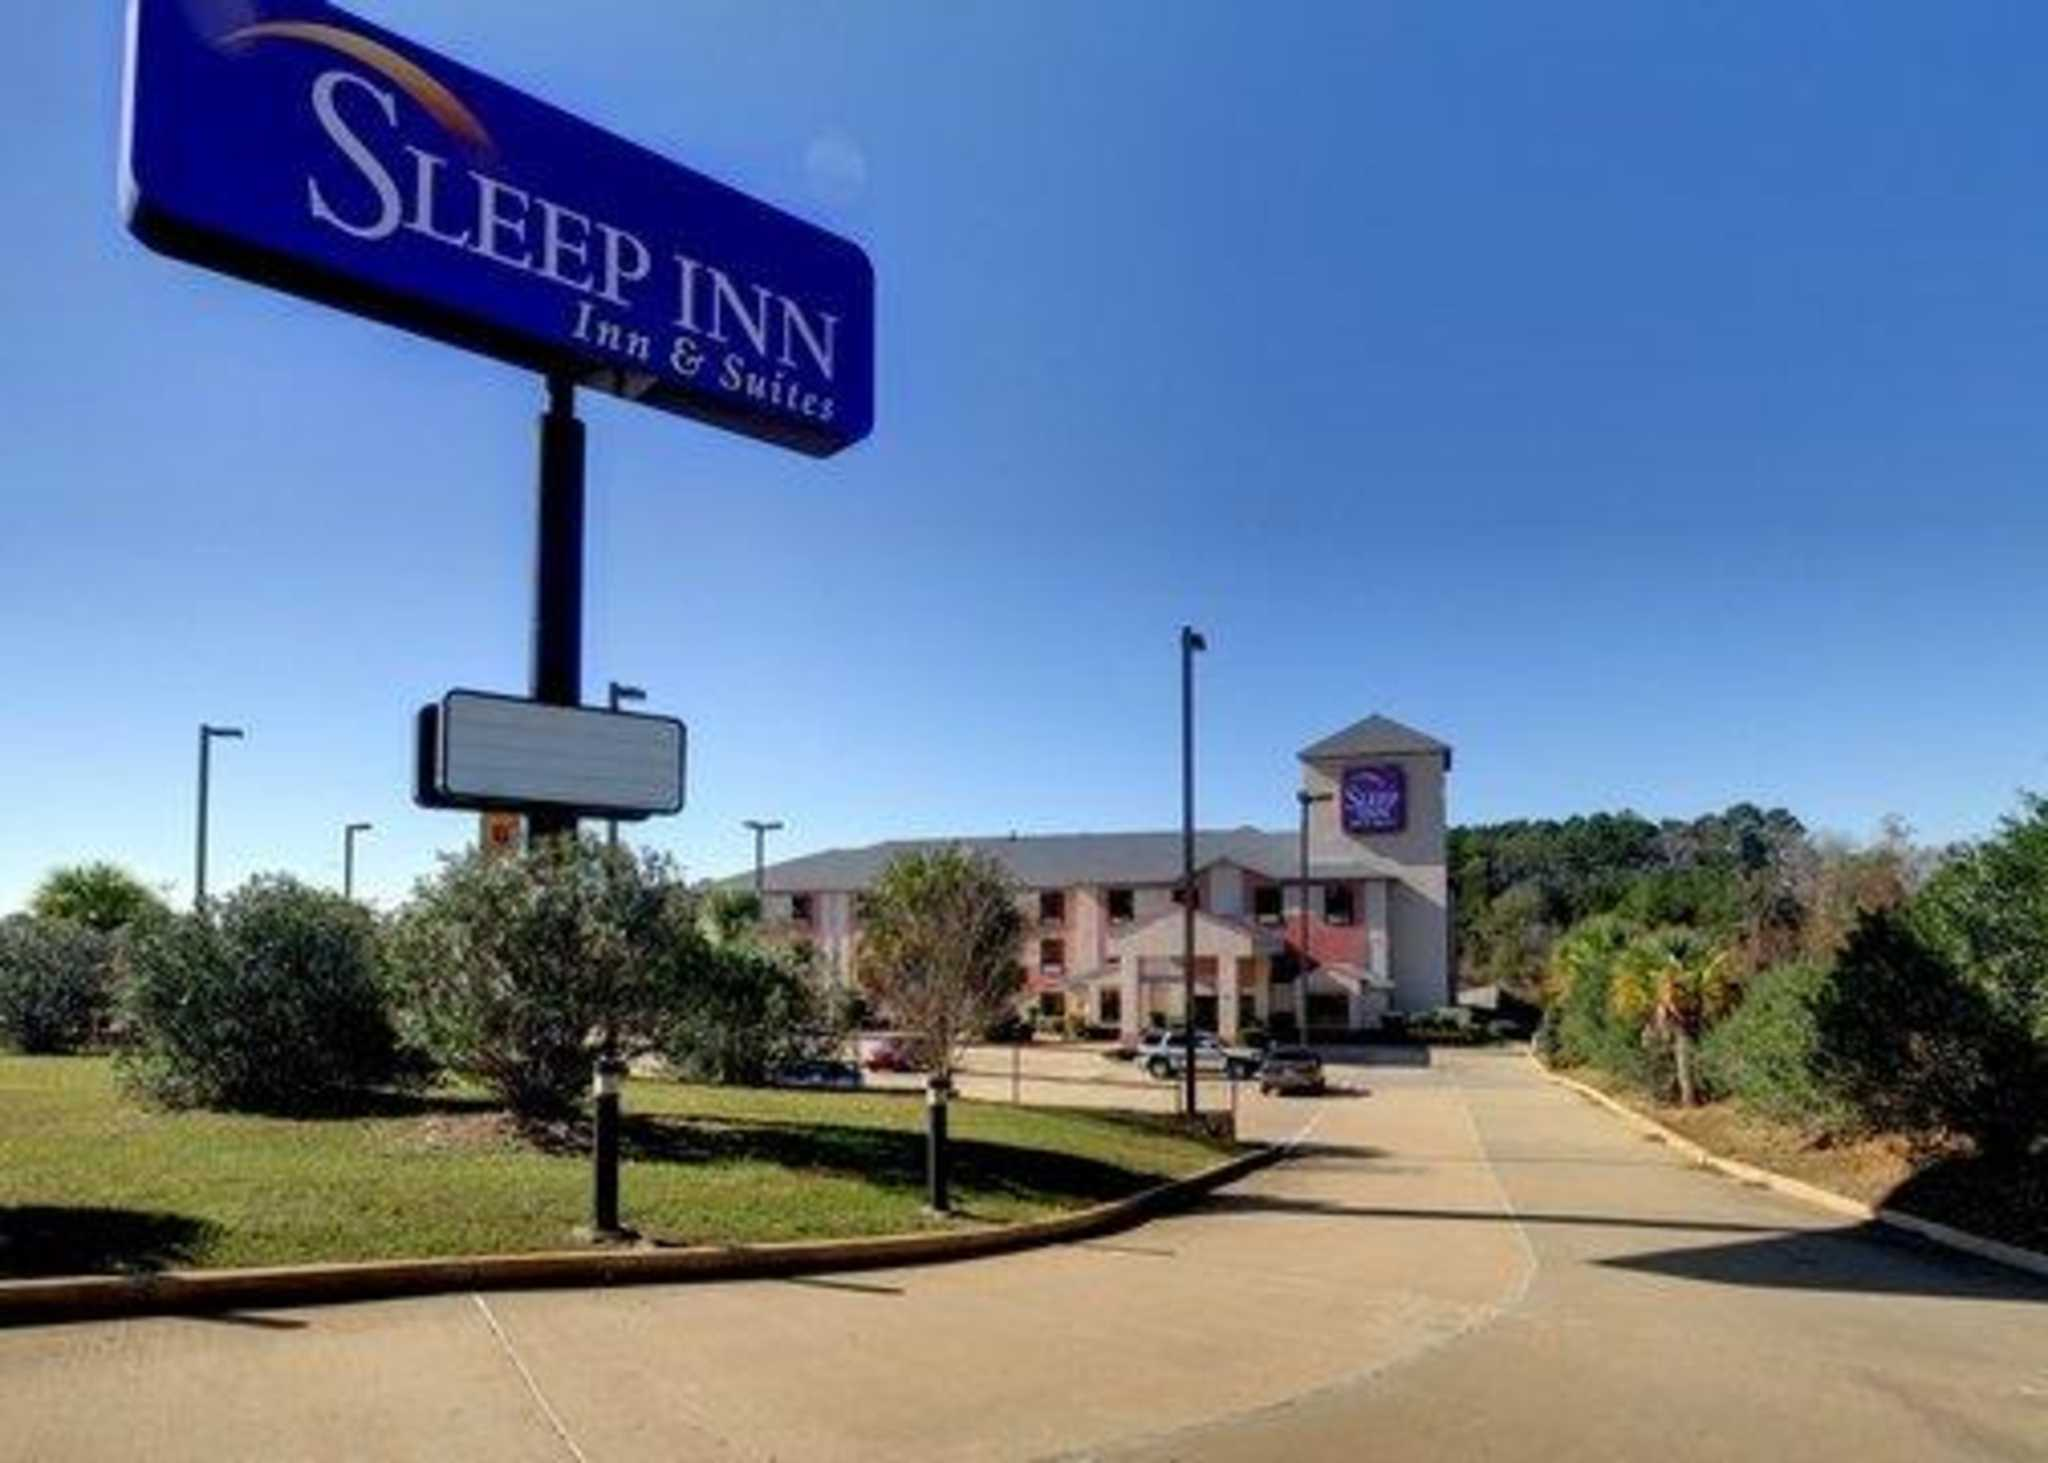 Sleep Inn  U0026 Suites  Pineville Louisiana  La